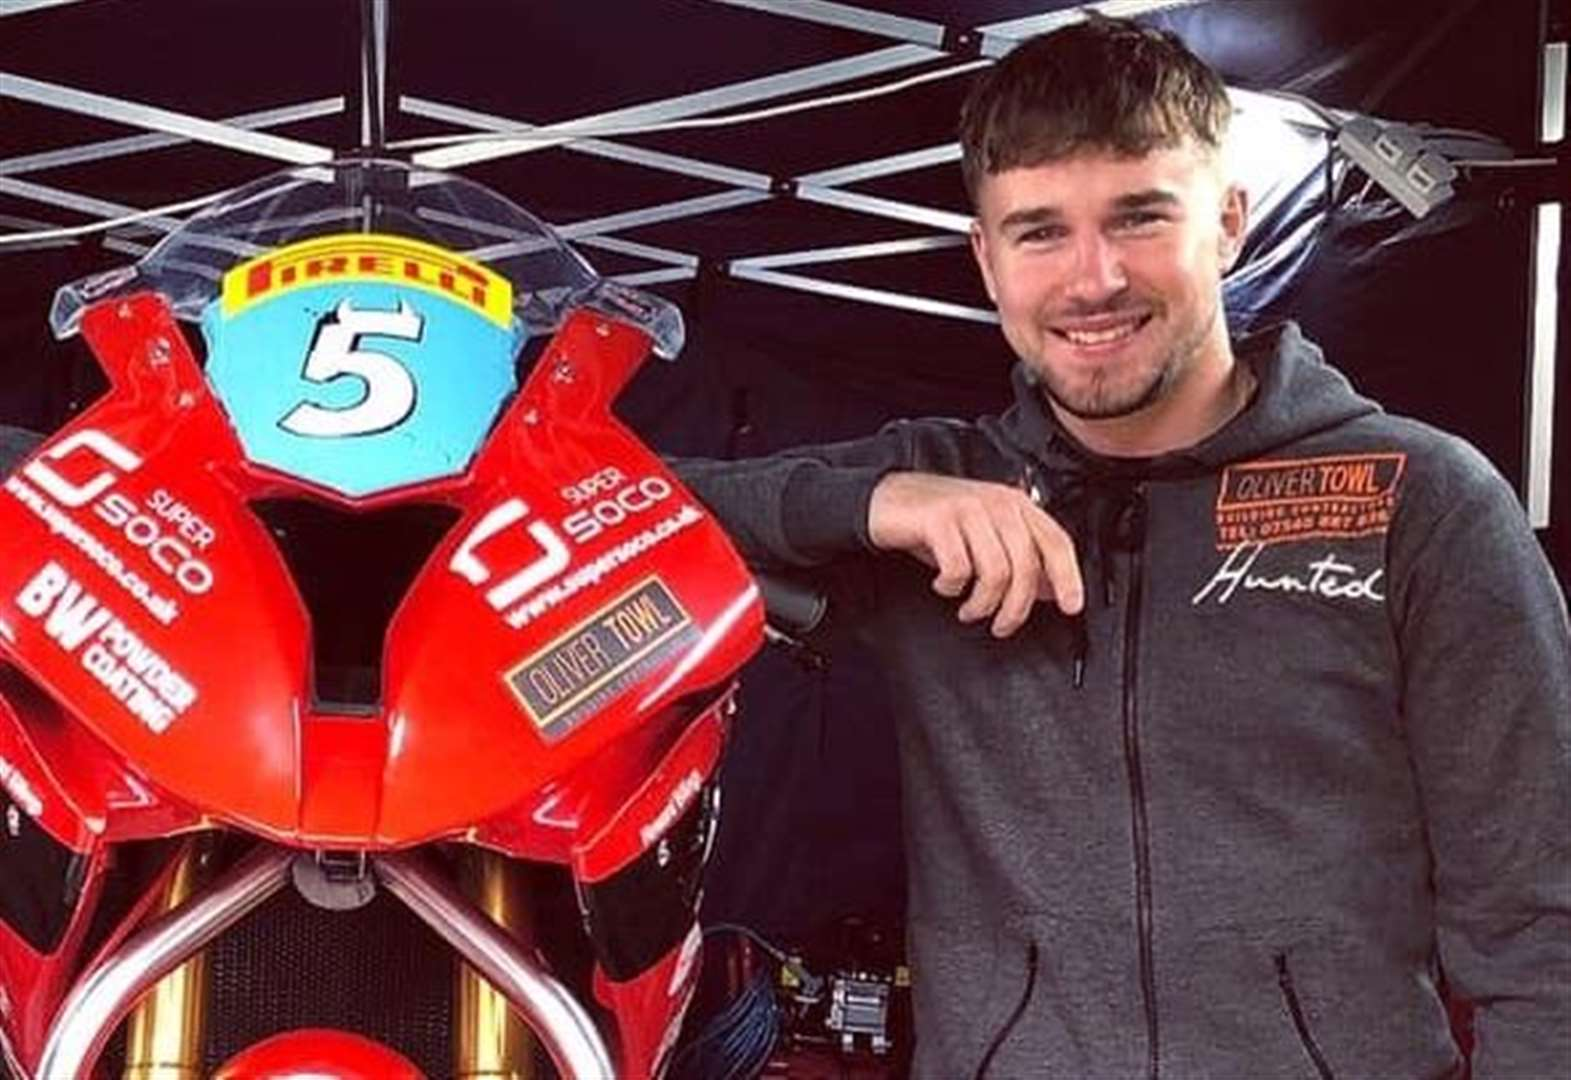 MOTORSPORT: Clarke stays positive as season reaches climax